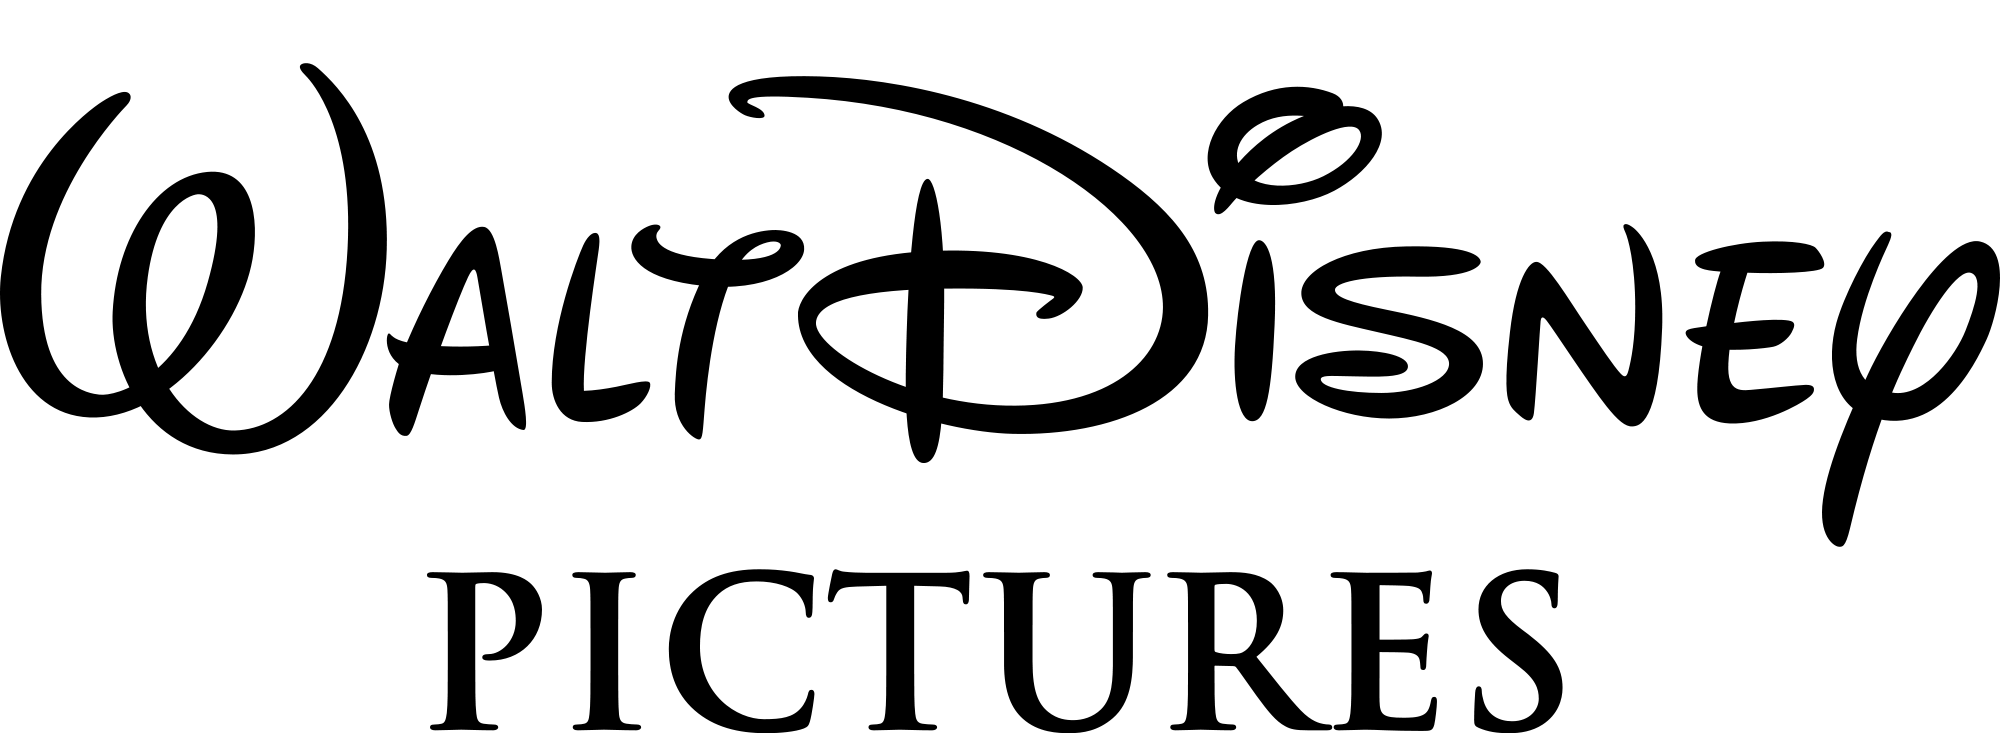 walt disney pictures logo transparent png stickpng